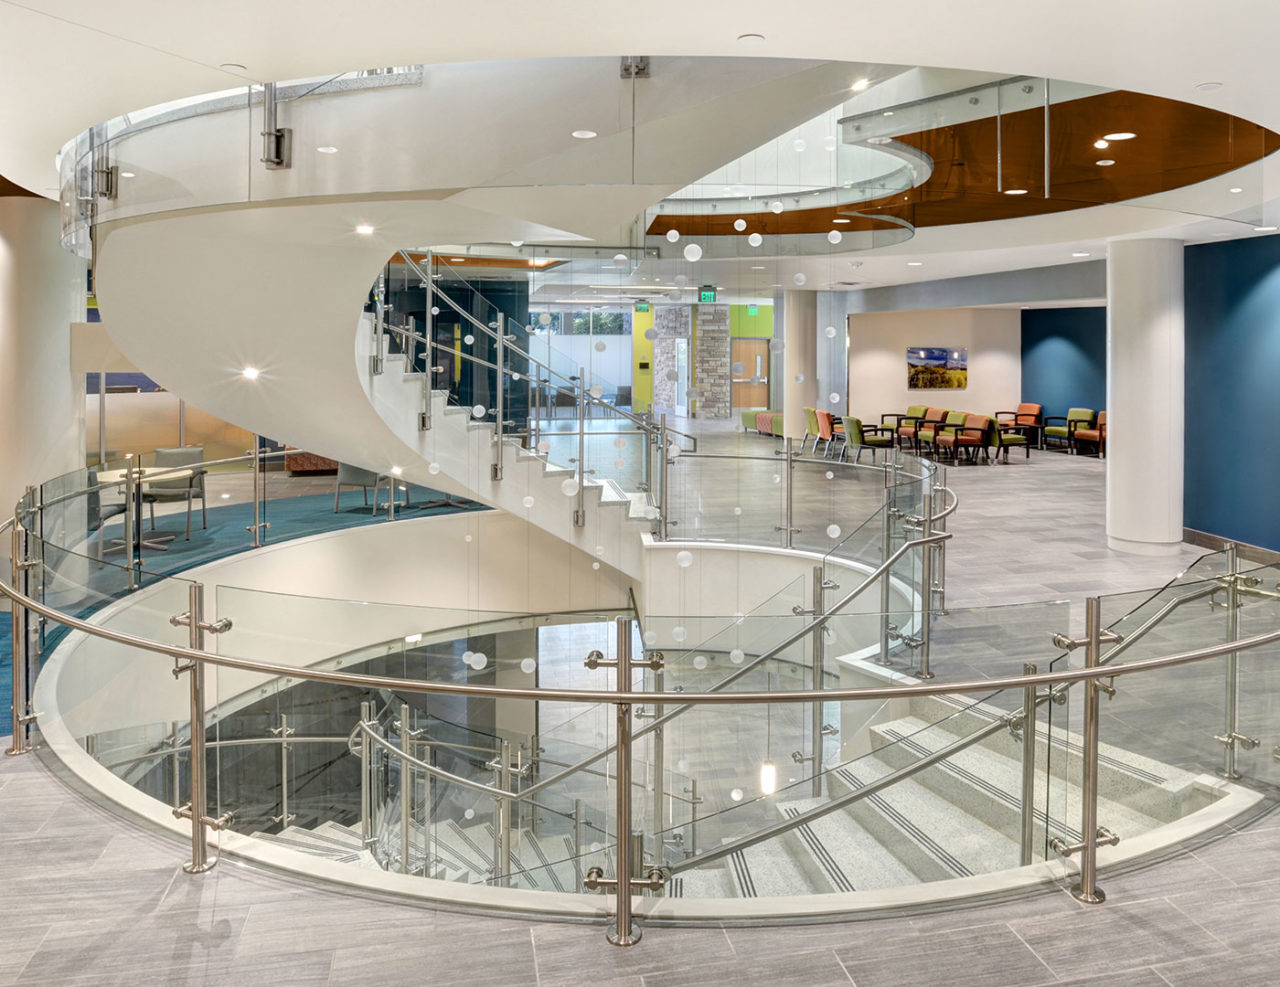 Trex Commercial Products' Vista glass railing provides the perfect accompaniment to the building's circular staircase and overlooks without distracting from the distinctive architectural details and cascading art installation.